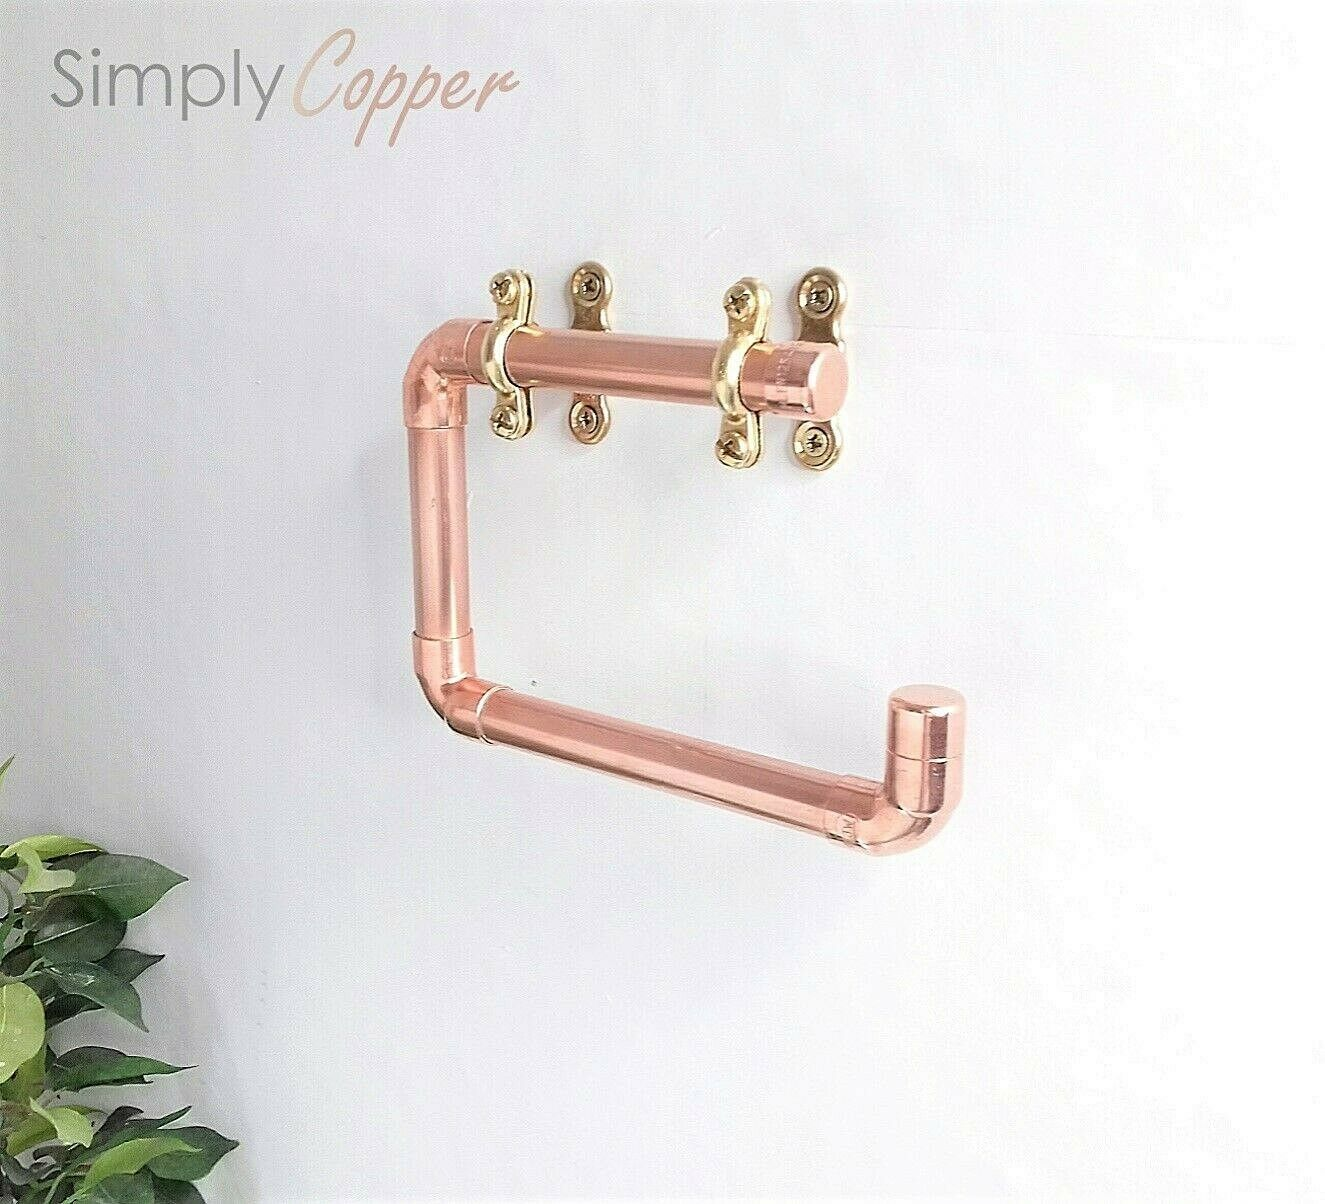 Copper Toilet Roll Holder + Solid Brass Fittings - Handmade With Real Copper